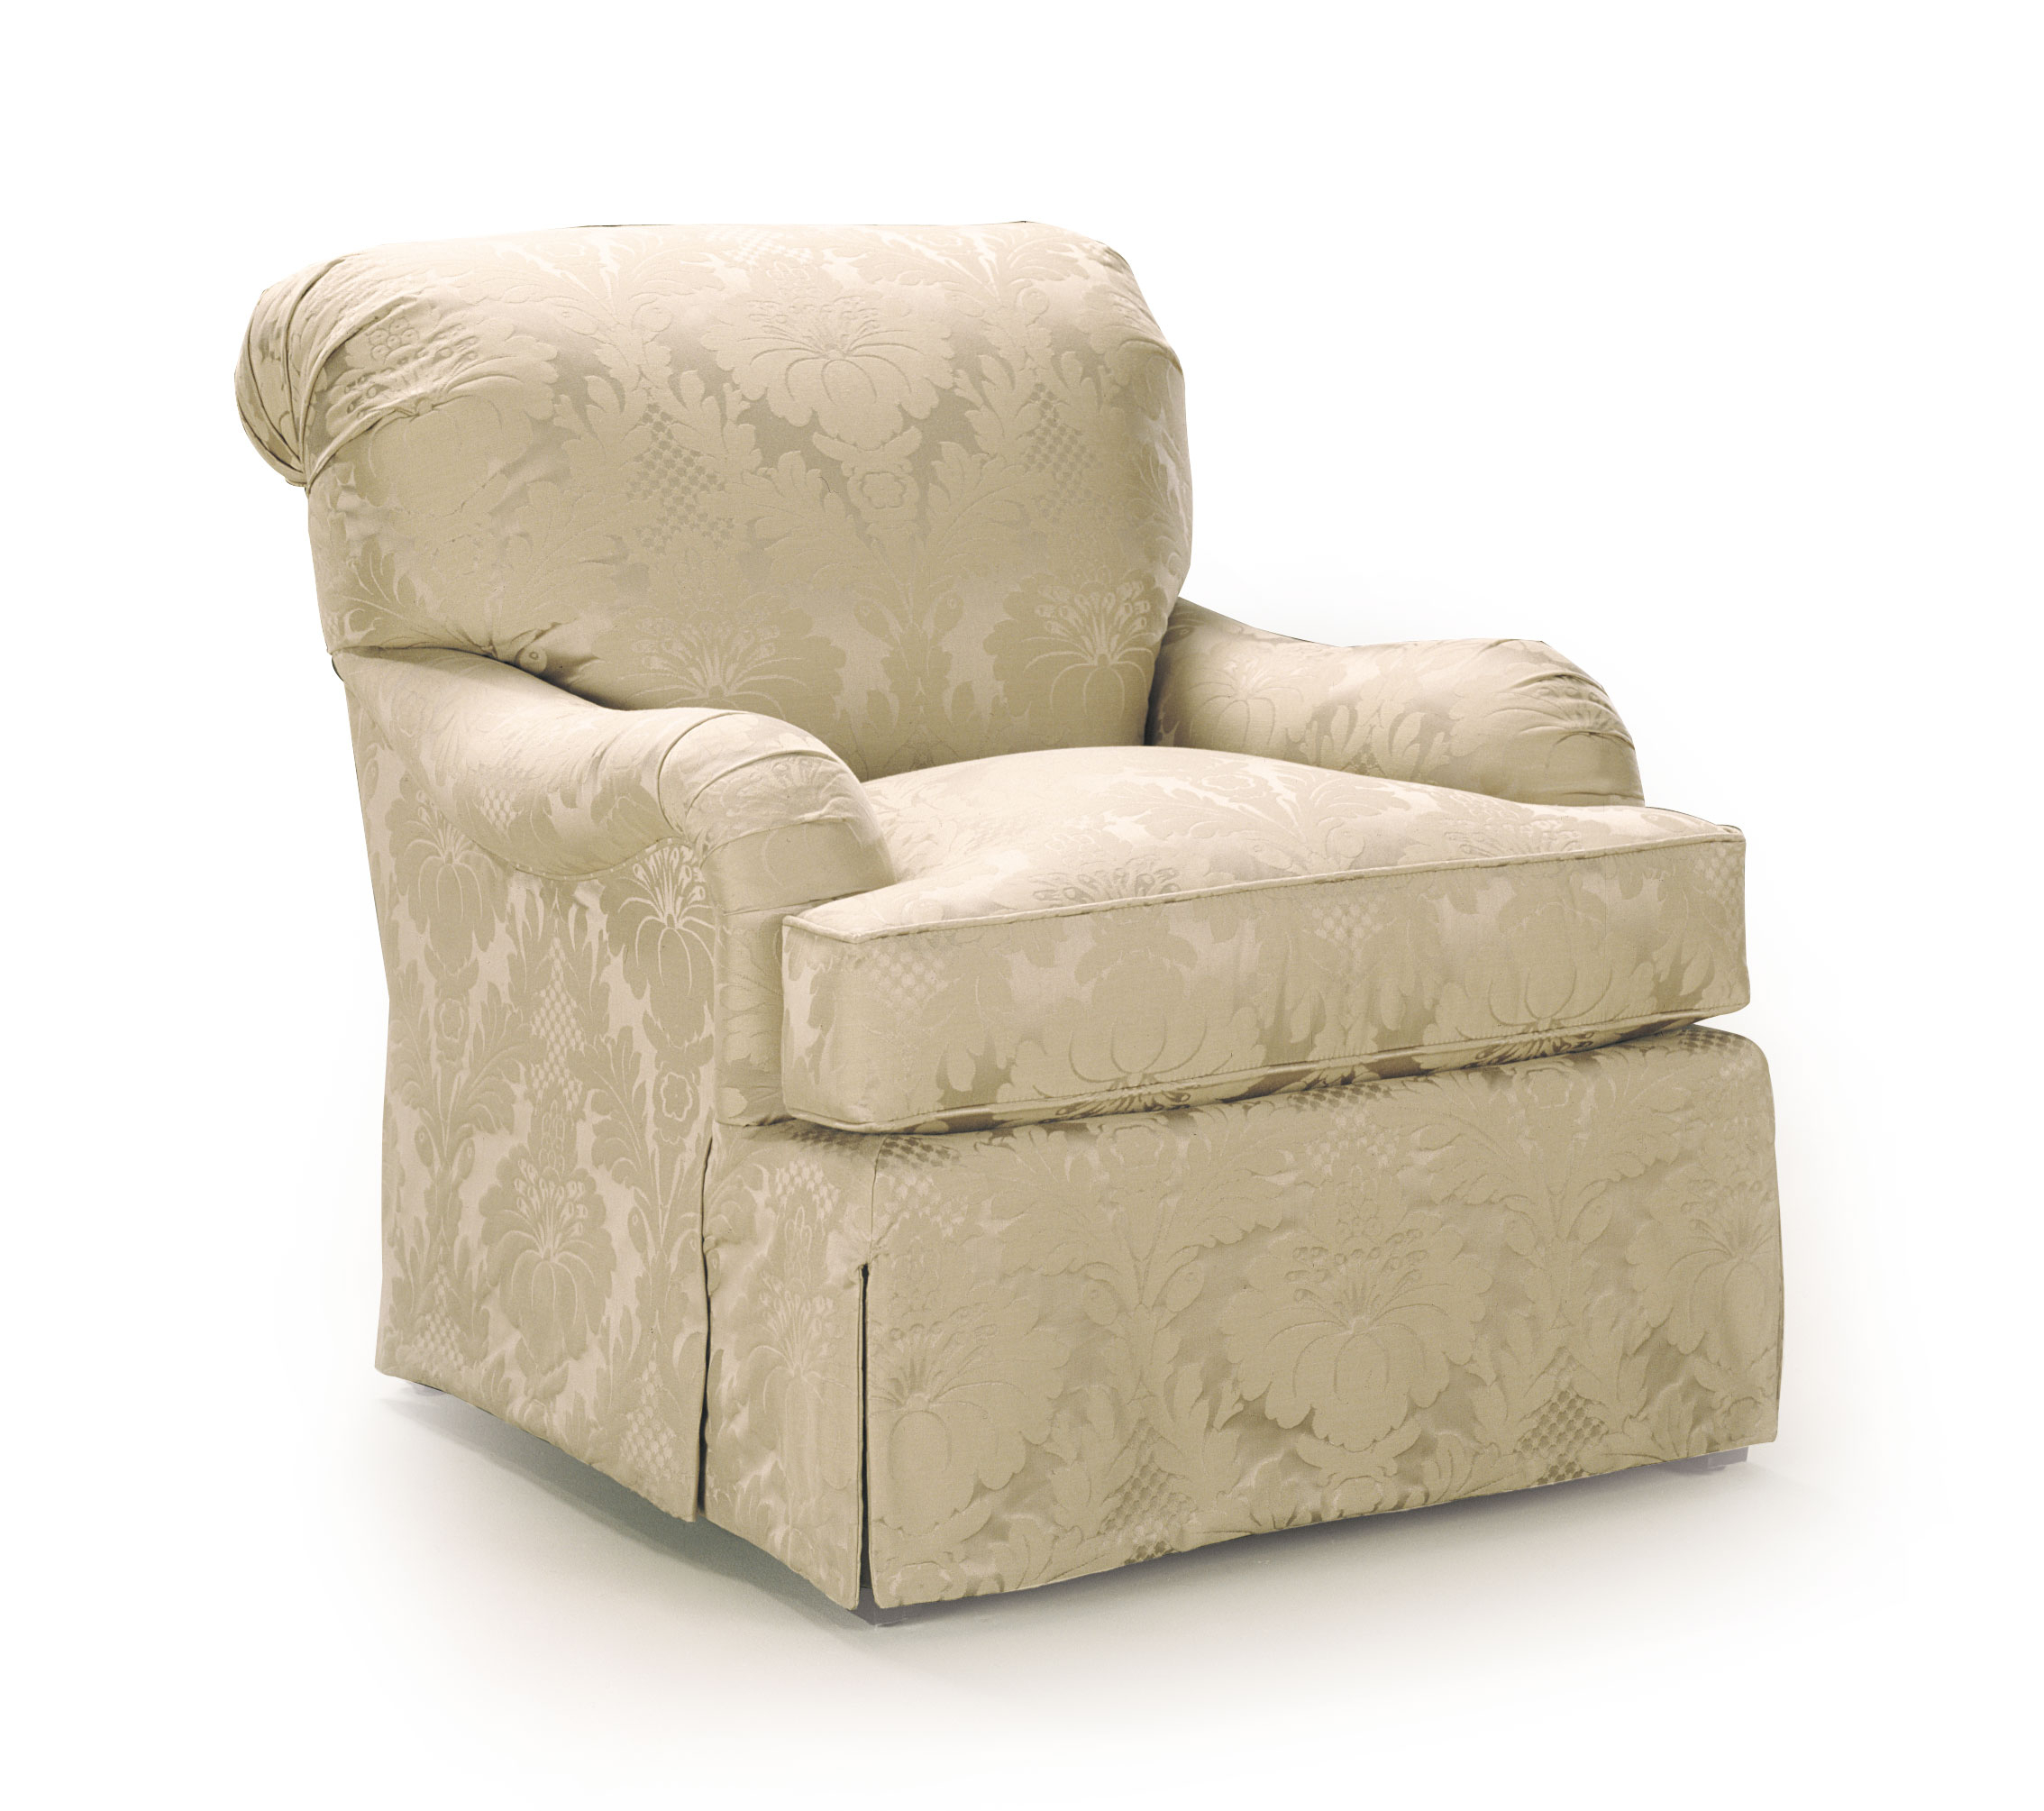 Furniture | Stanford Furniture Intended For Maddox Oversized Sofa Chairs (View 11 of 25)